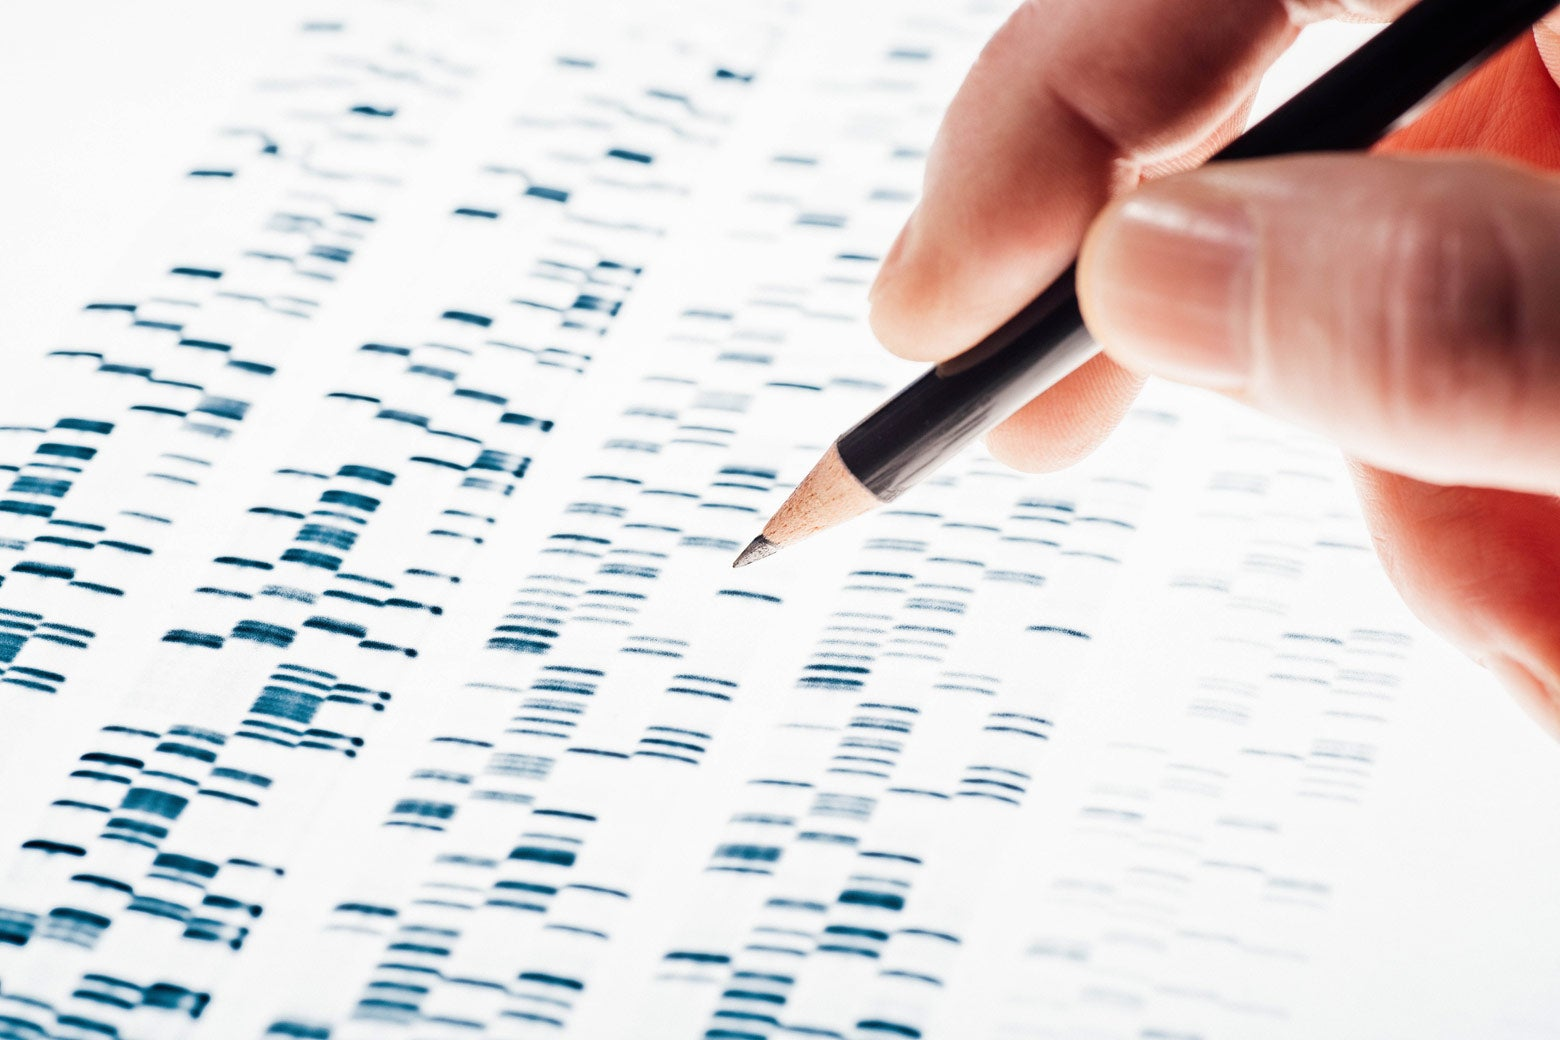 A pencil hovering over a Sanger sequencing image.